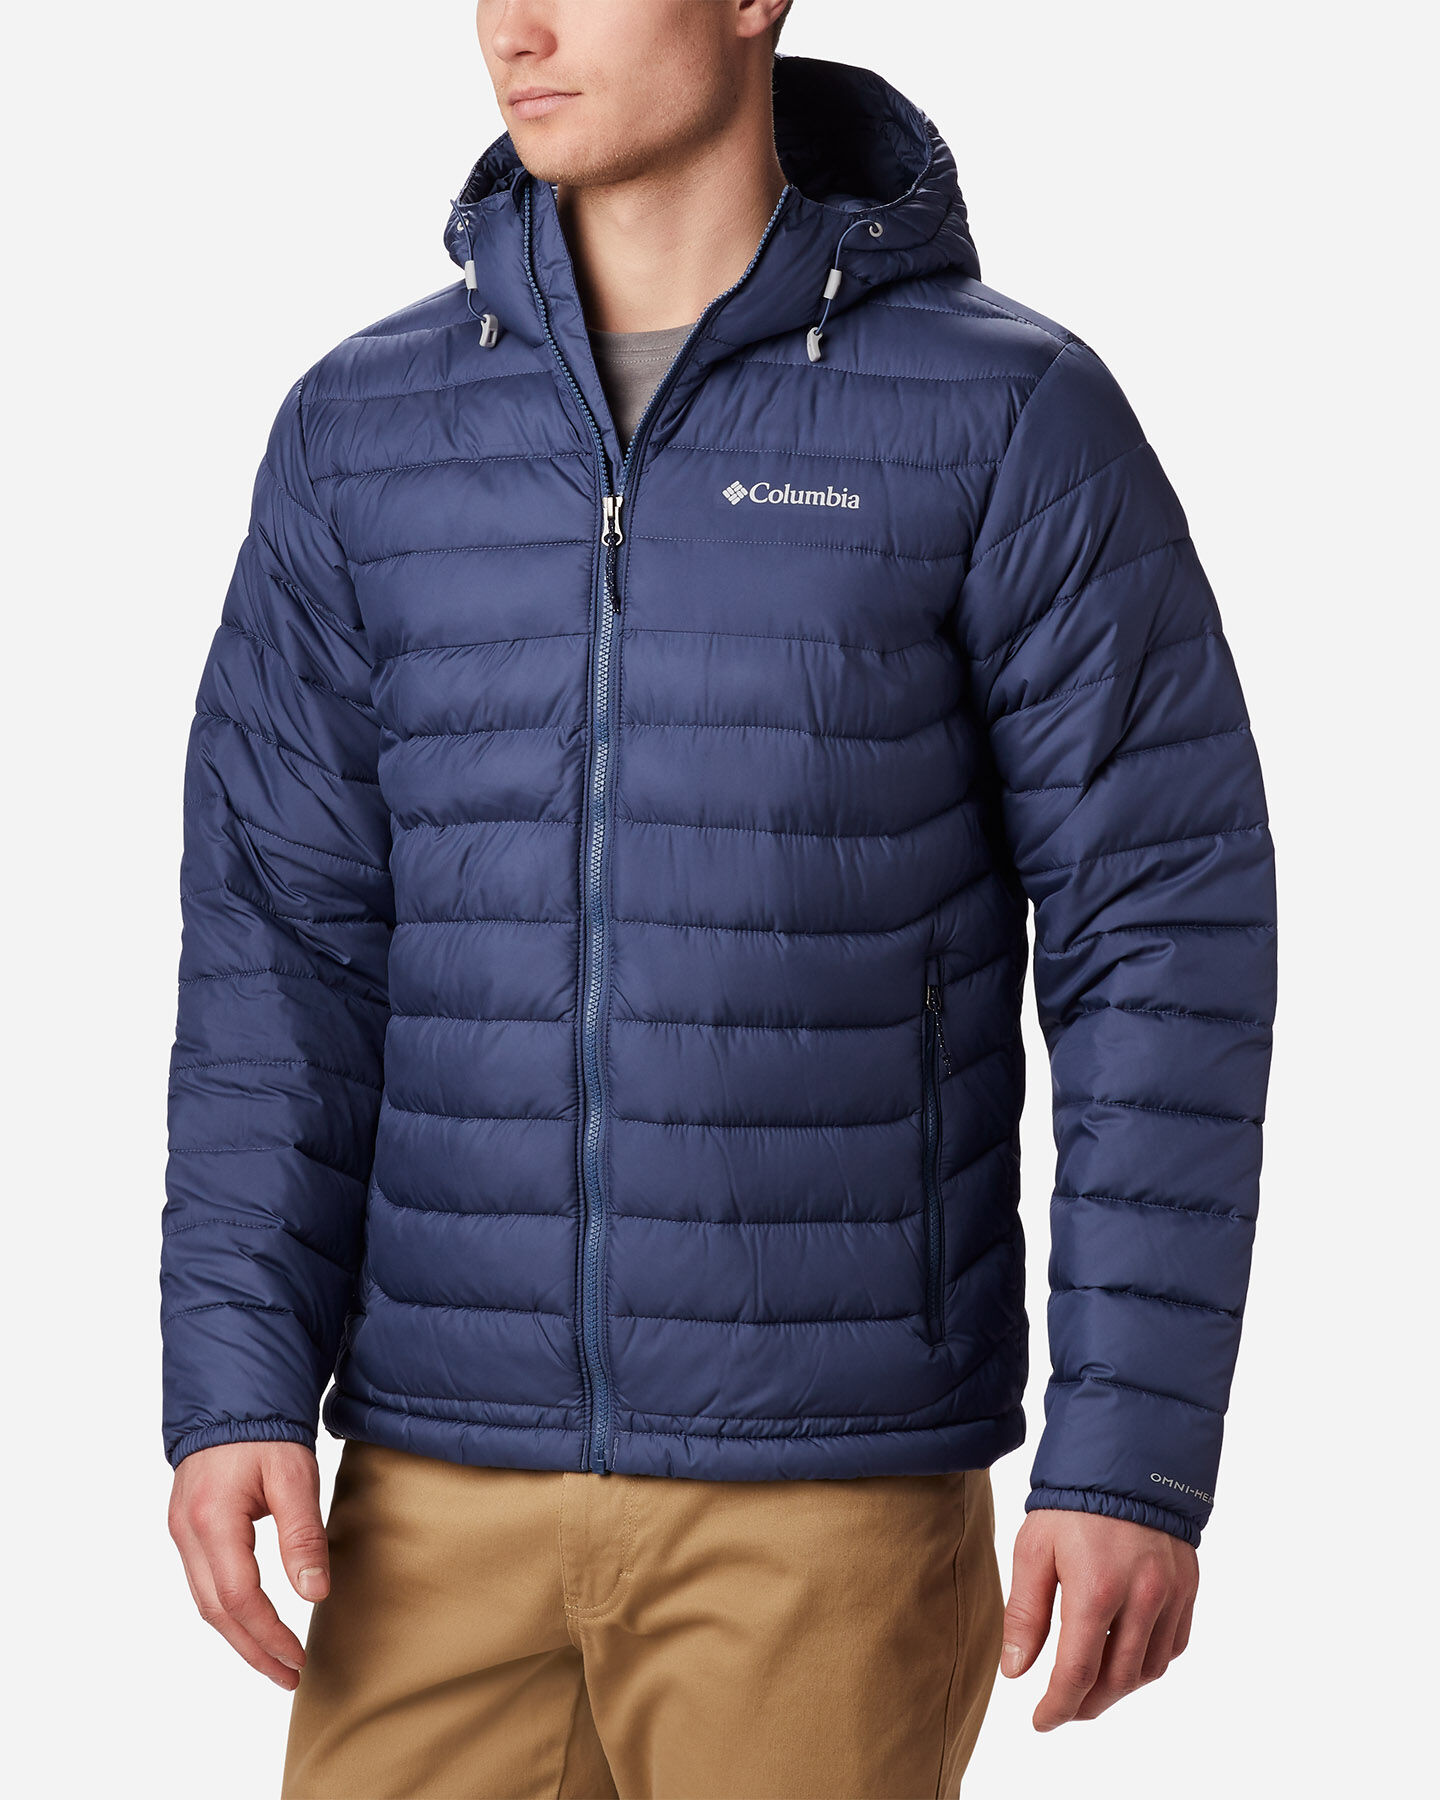 Giacca outdoor COLUMBIA POWDER LITE M S5204002 scatto 2